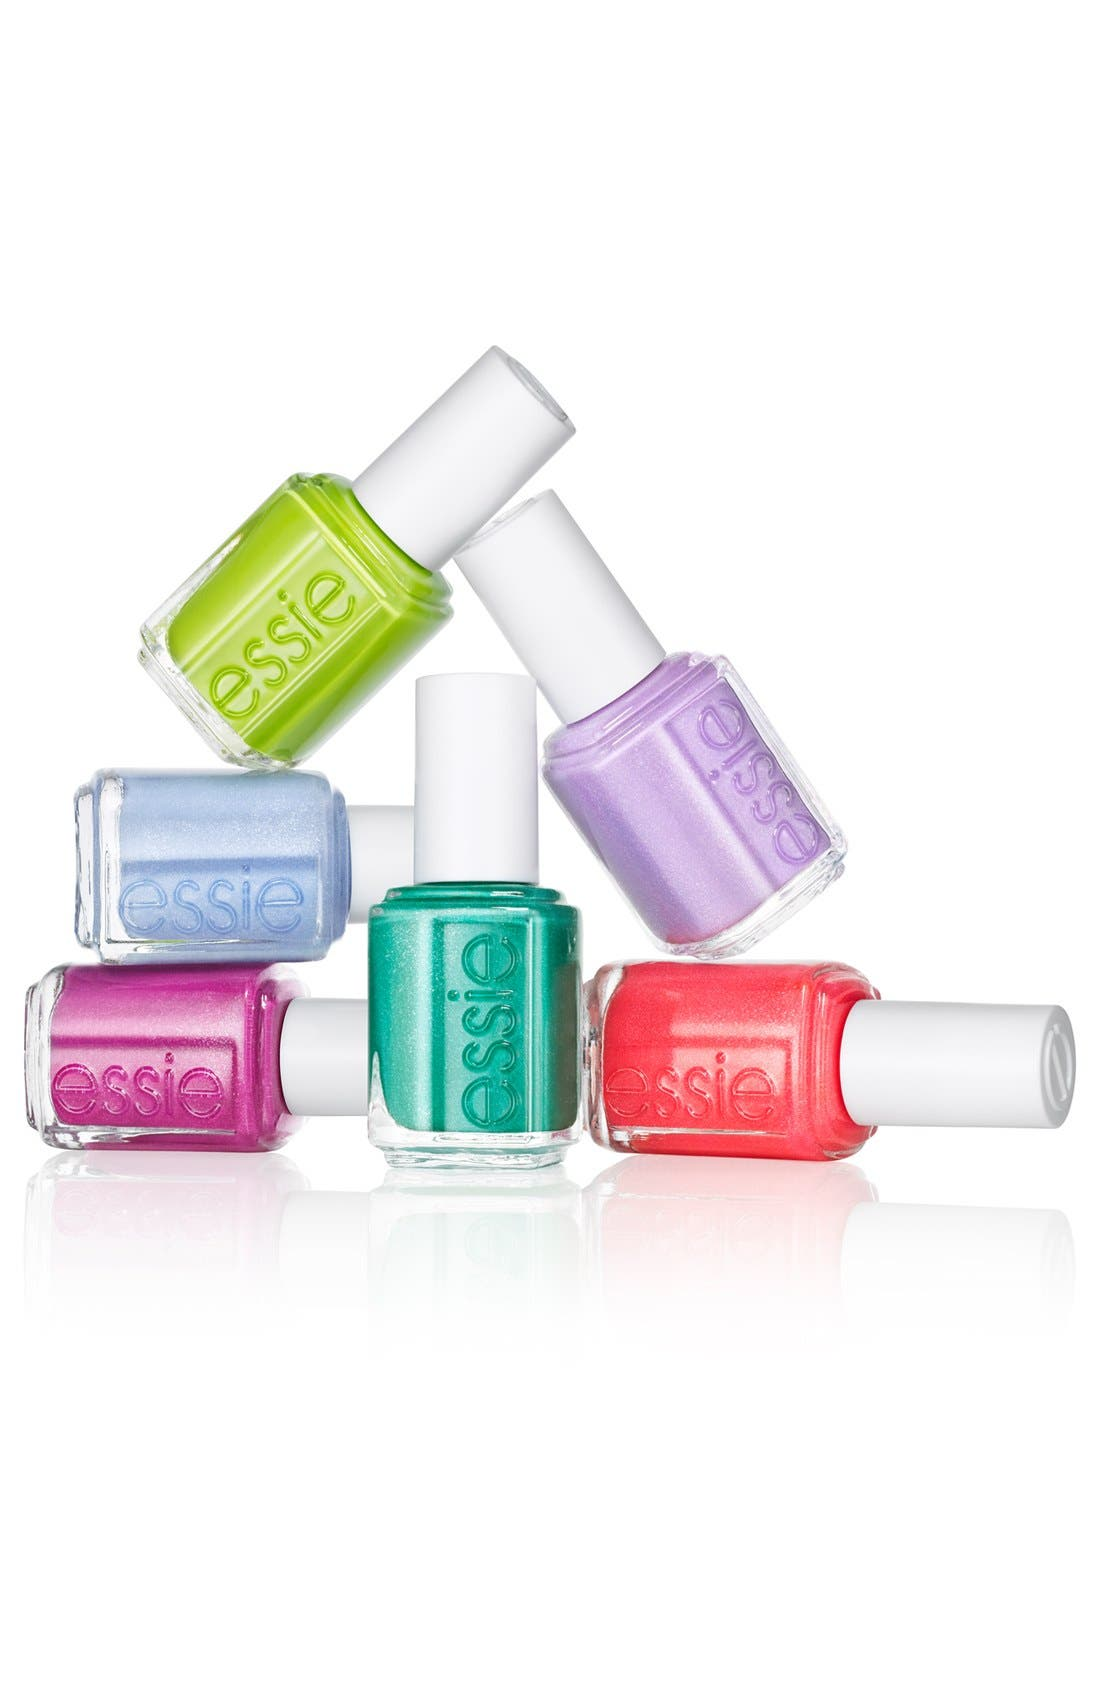 ESSIE,                              Summer Collection Nail Polish,                             Alternate thumbnail 2, color,                             300